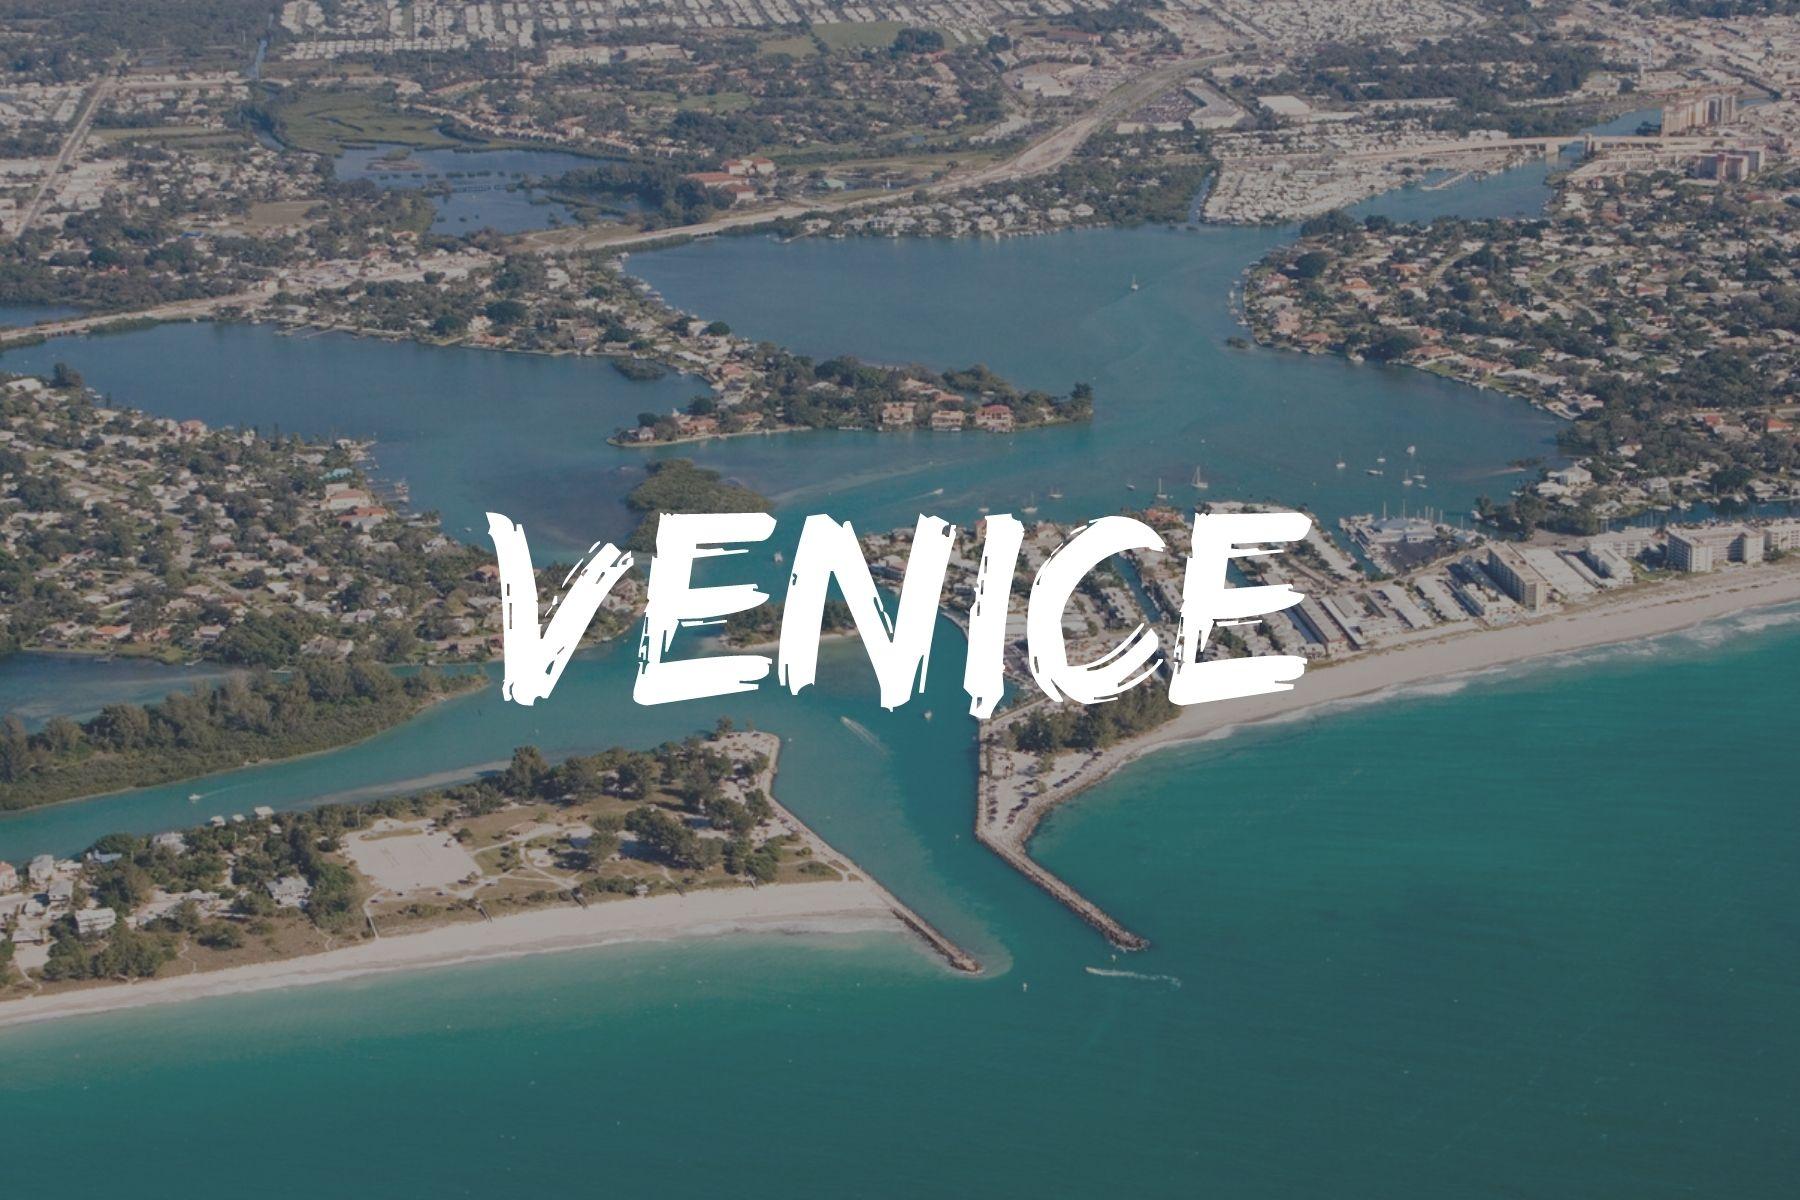 Real Estate Agent Venice Florida